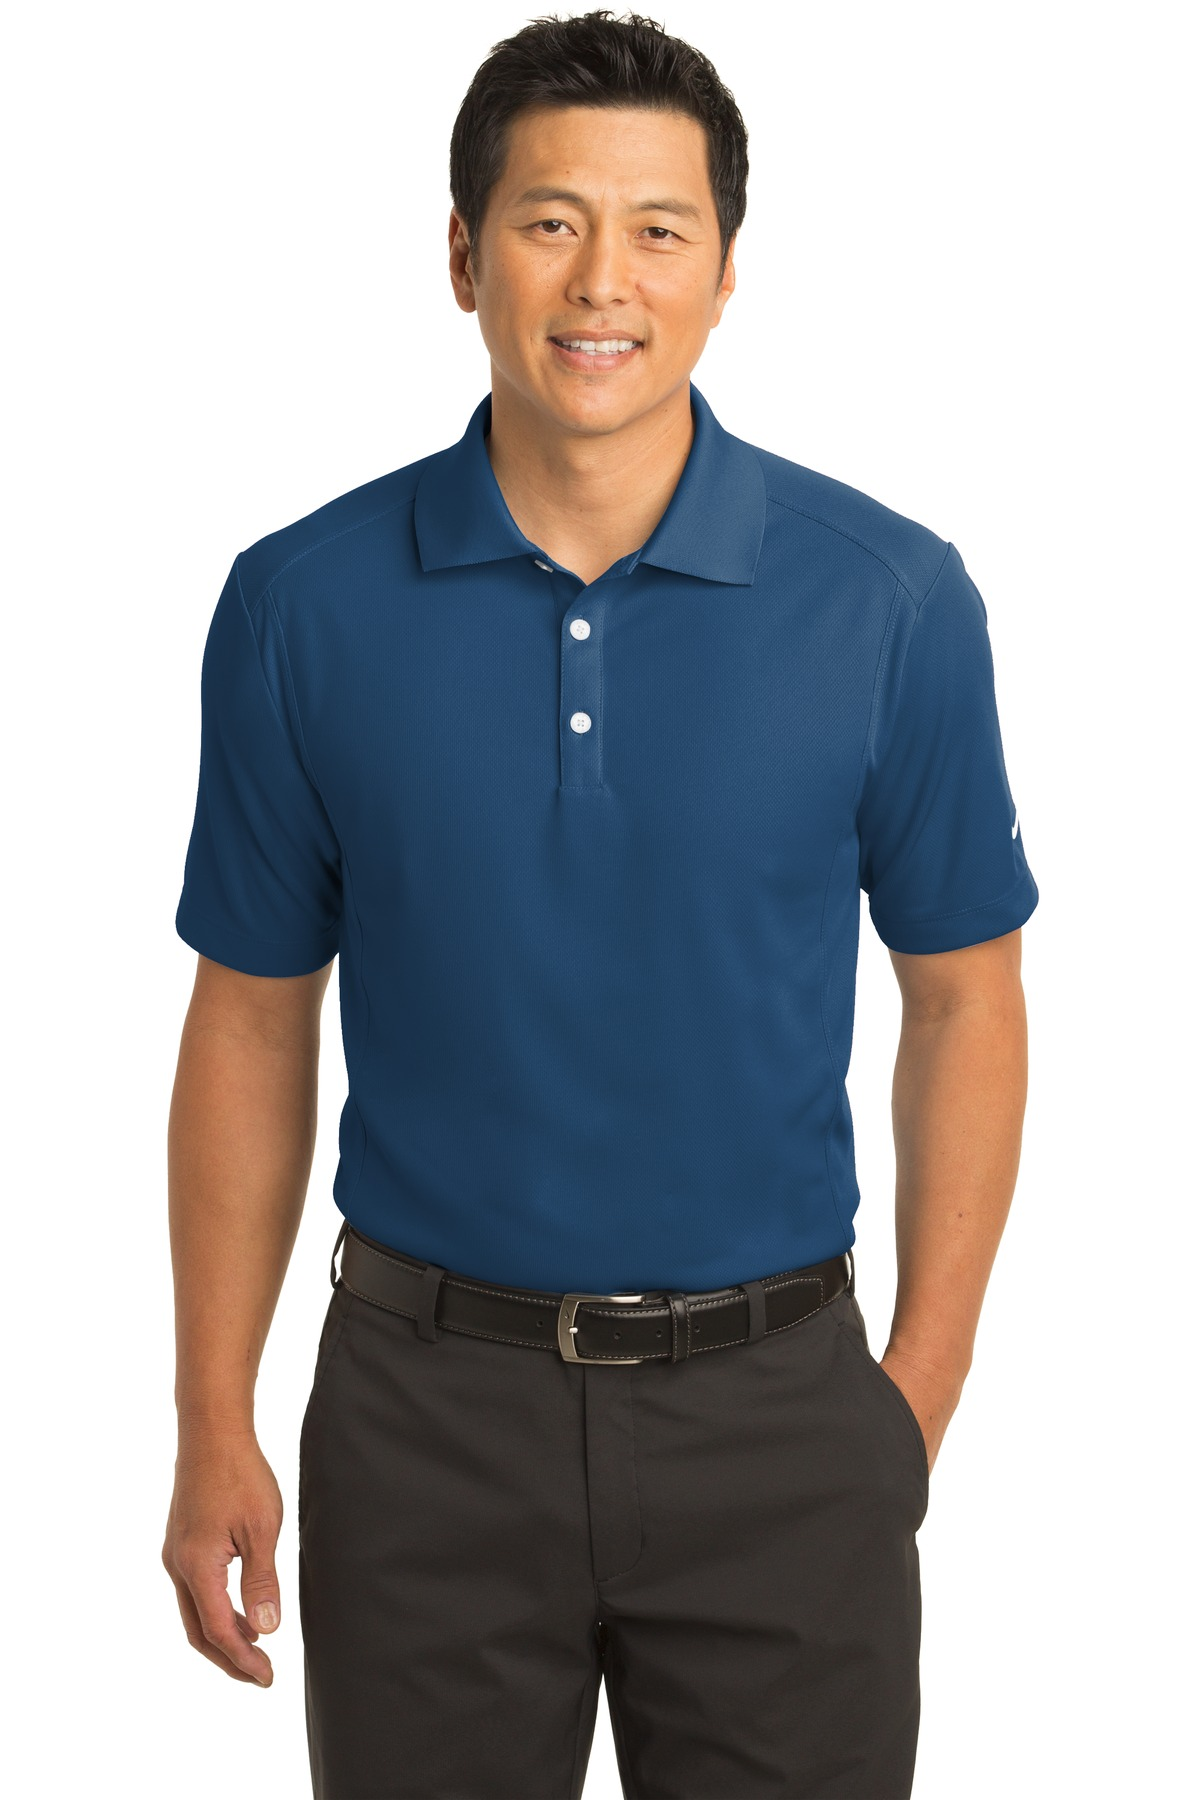 Nike Dri-FIT Classic Polo.  267020 - Court Blue